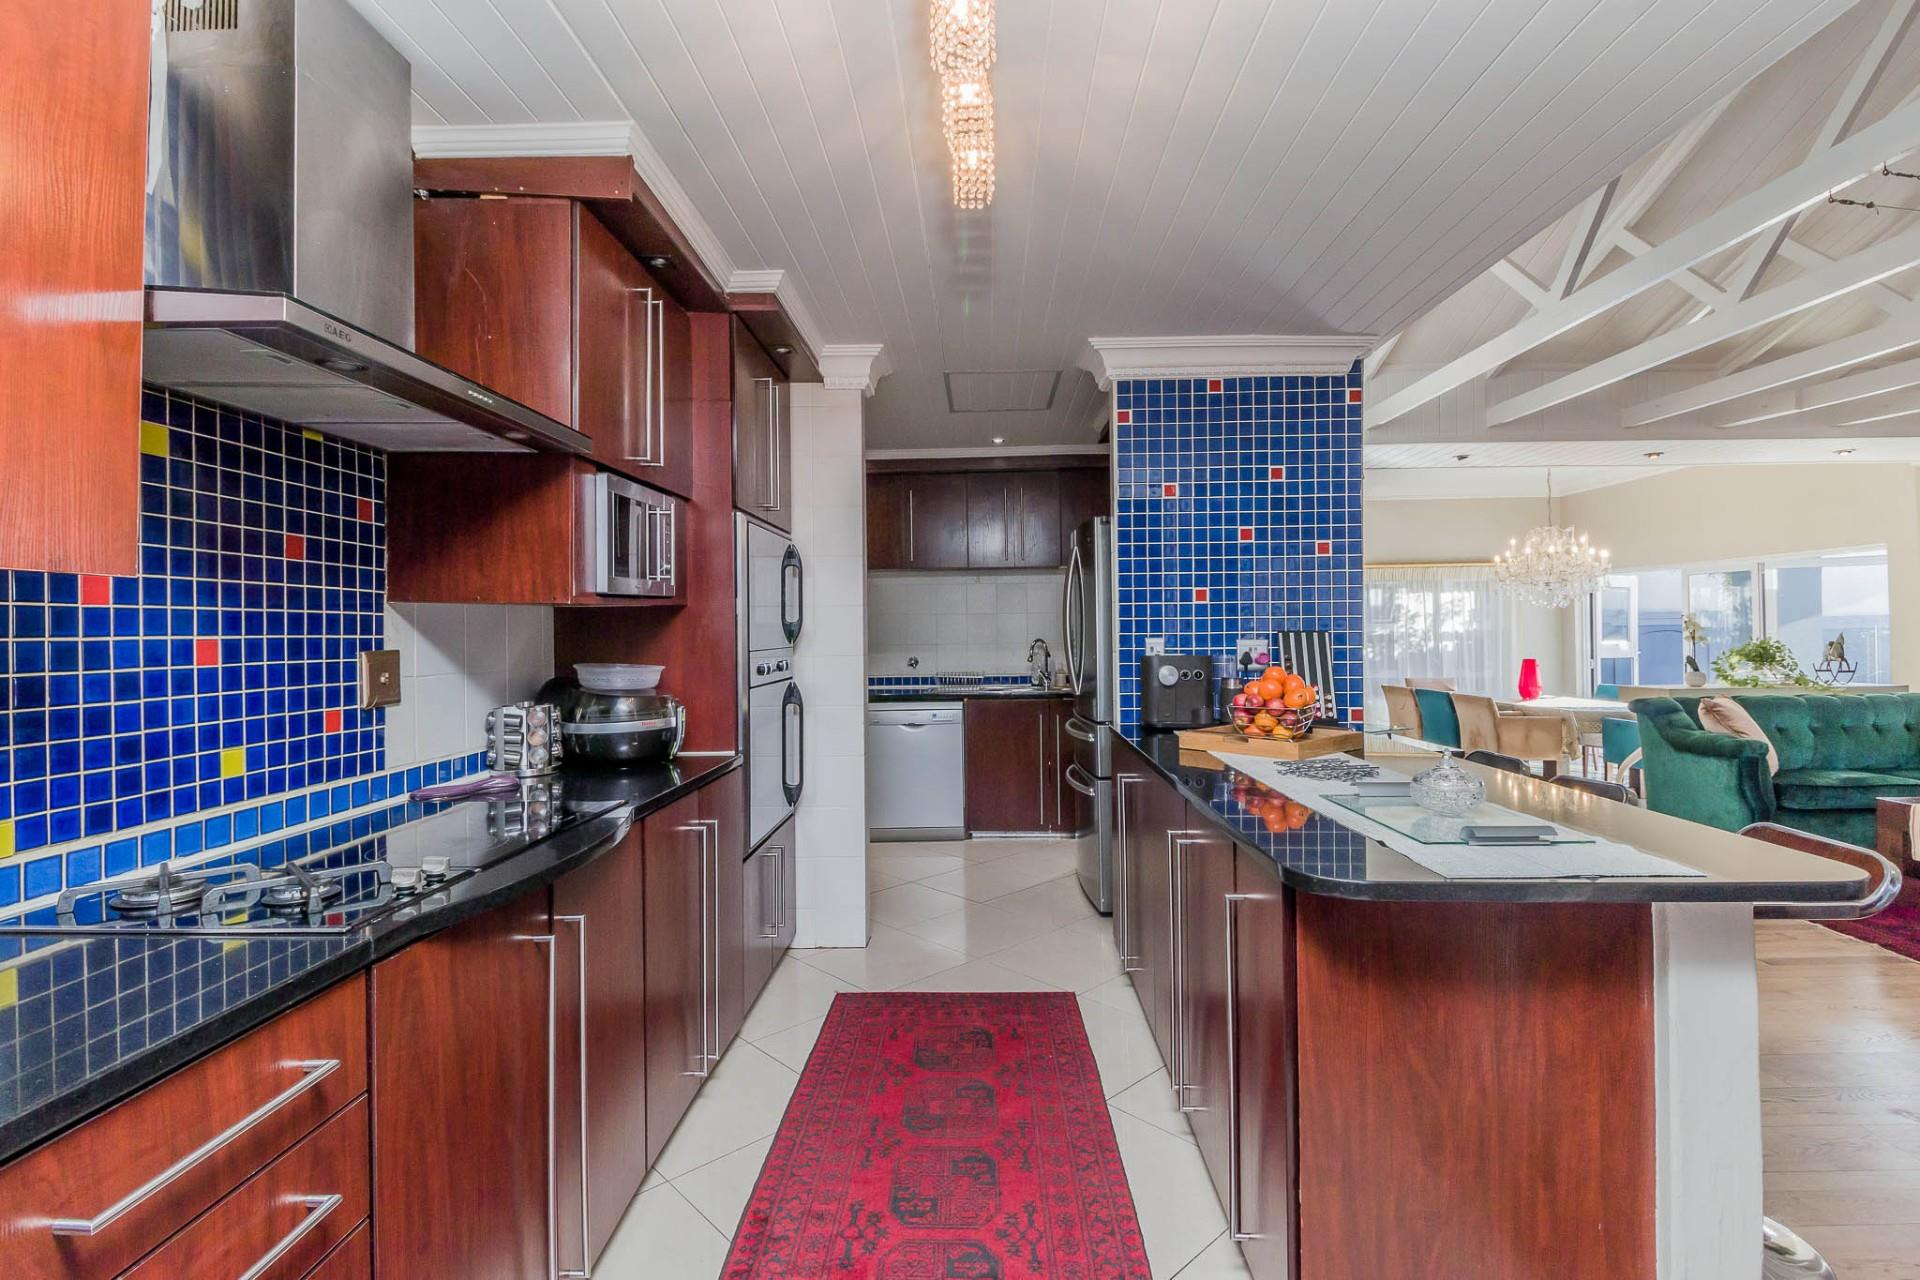 5 Bedroom House For Sale in West Beach